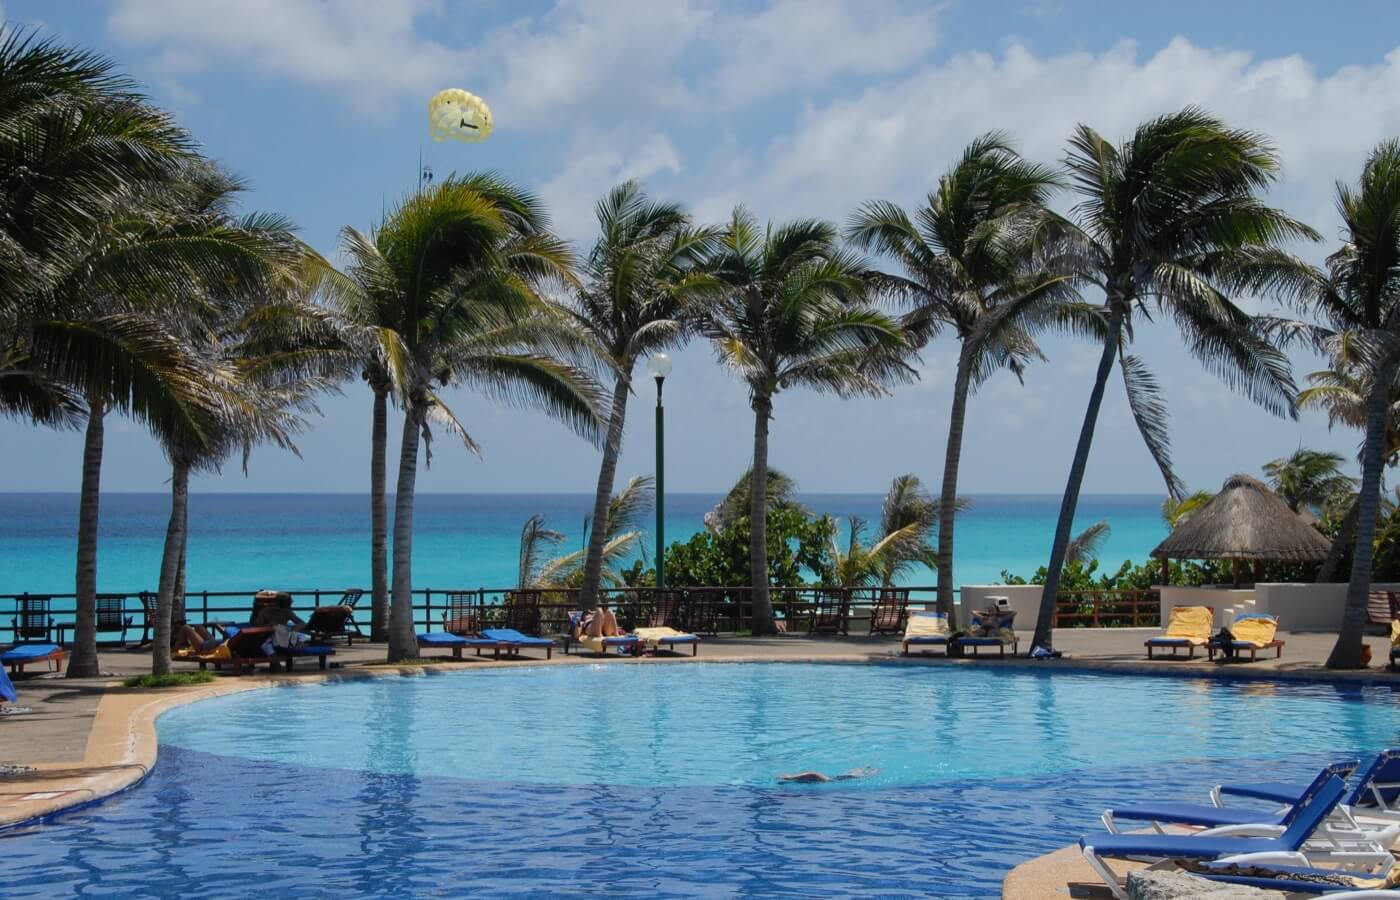 Swimming pools next to a palm tree restaurant at the Grand Oasis Cancun Hotel